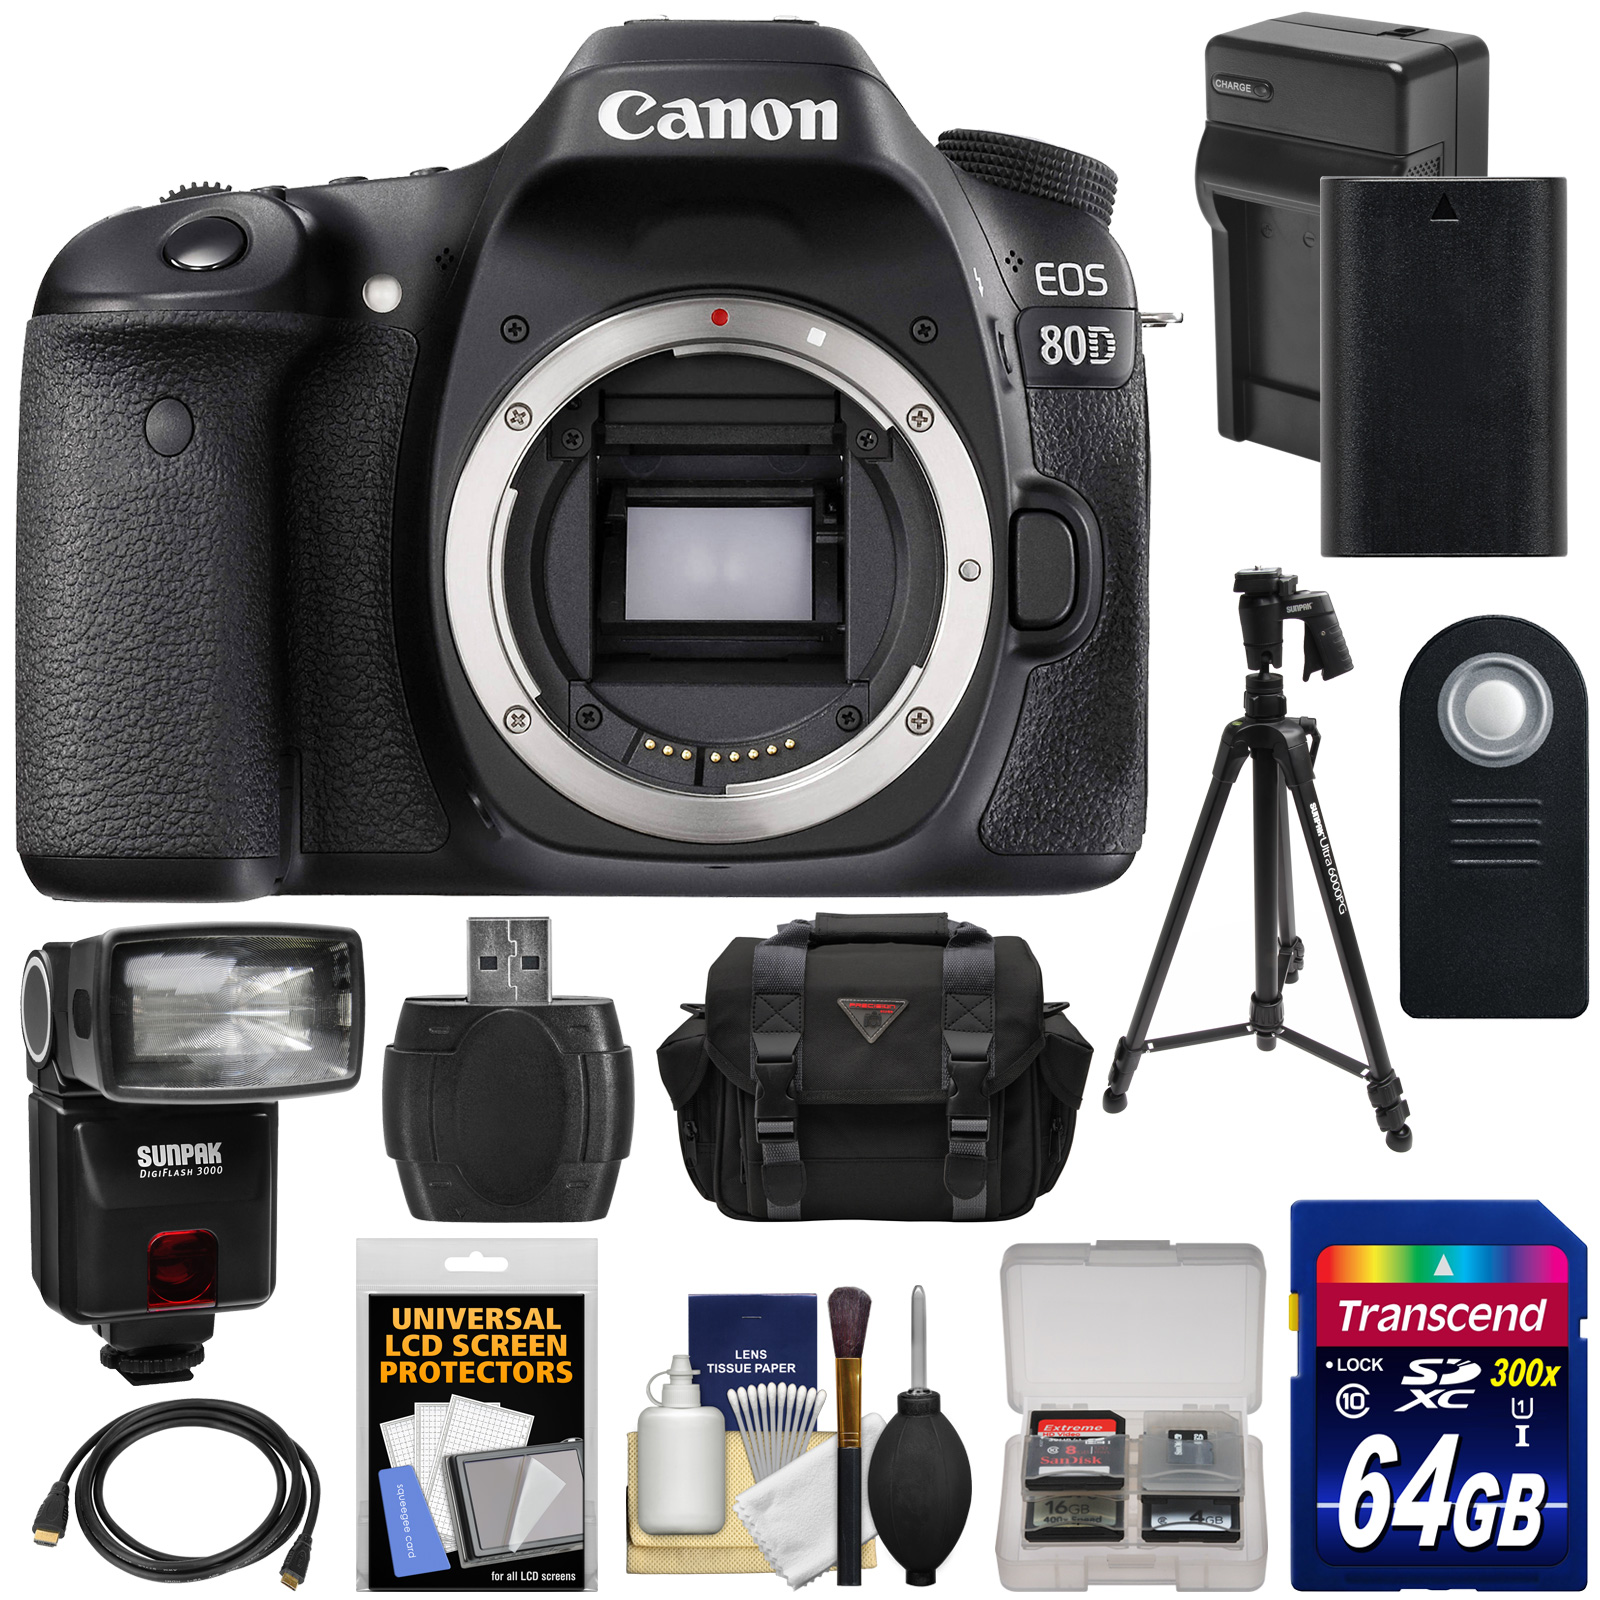 Canon EOS 80D Wi-Fi Digital SLR Camera Body with 64GB Card + Battery & Charger + Case + Flash + Tripod + Kit by Canon